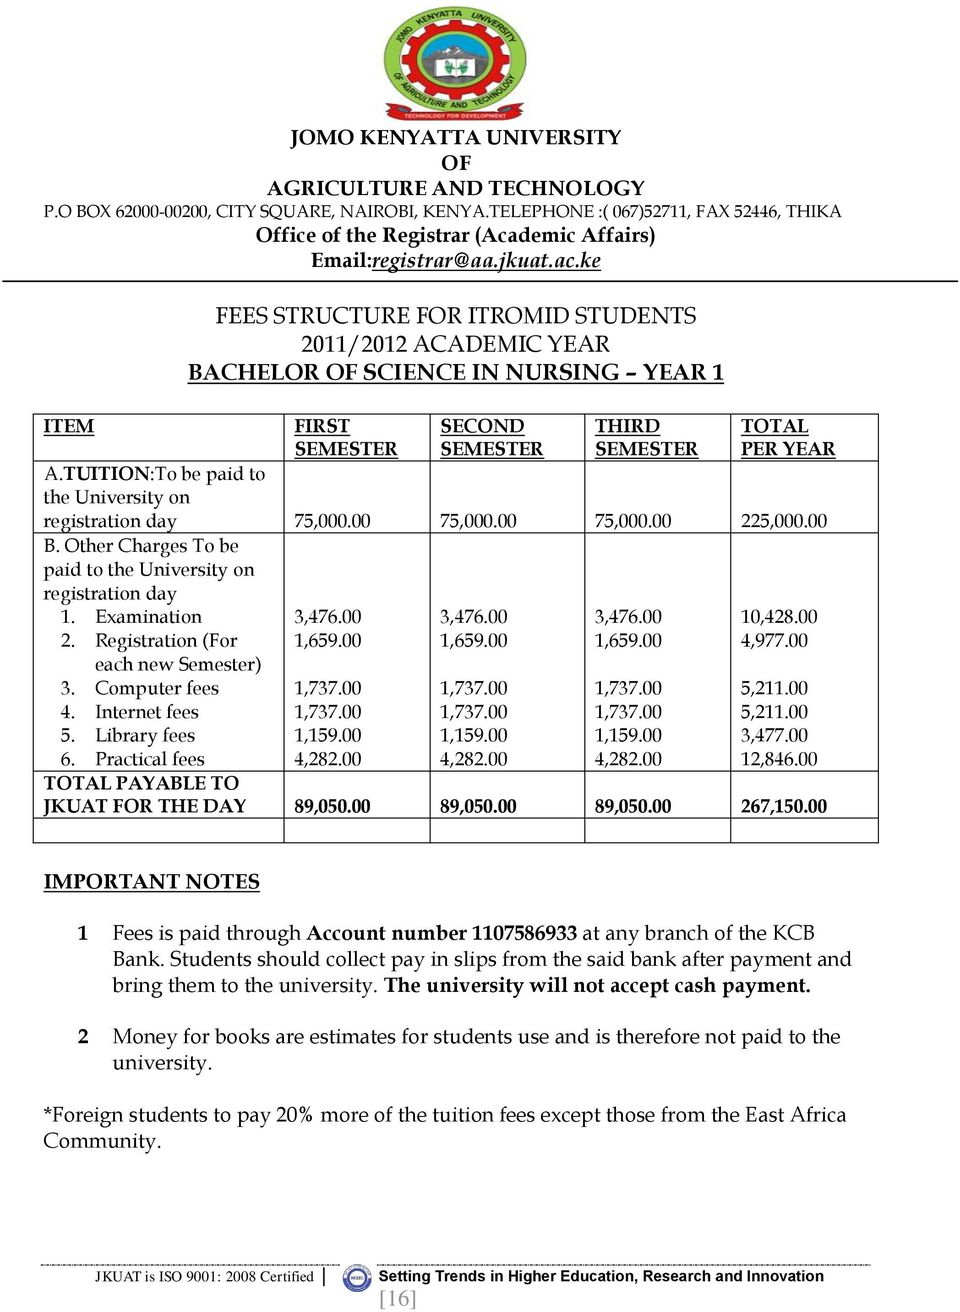 TUITION:To be paid to the University on registration day 75,000.00 75,000.00 75,000.00 225,000.00 B. Other Charges To be paid to the University on registration day 1. Examination 2.